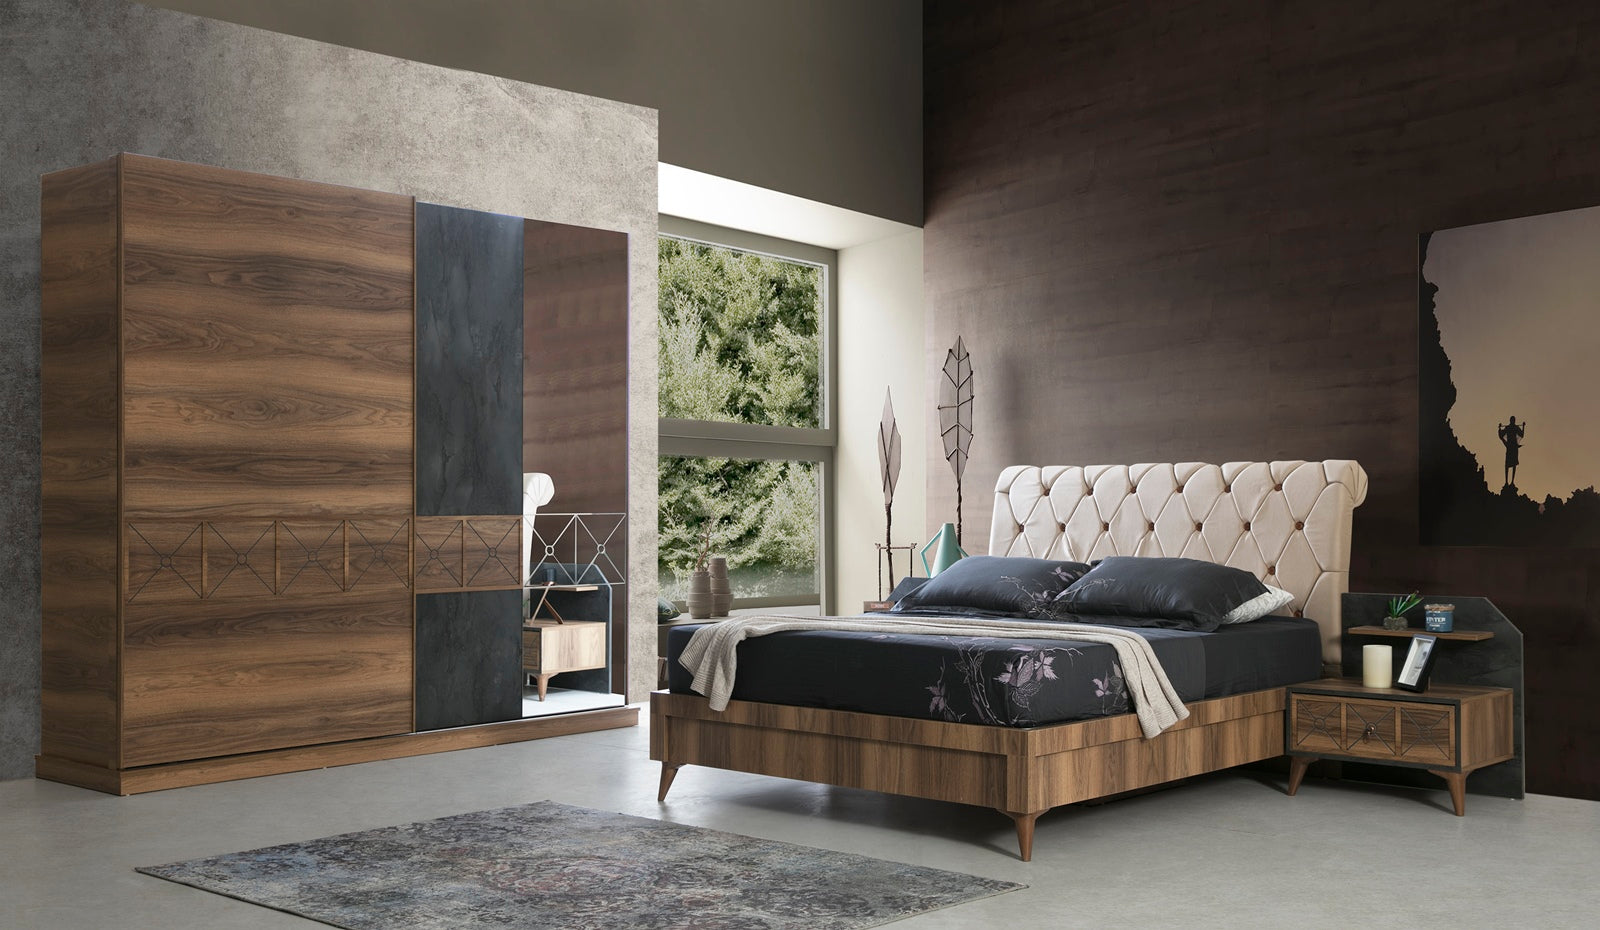 İMAJ Bedroom set